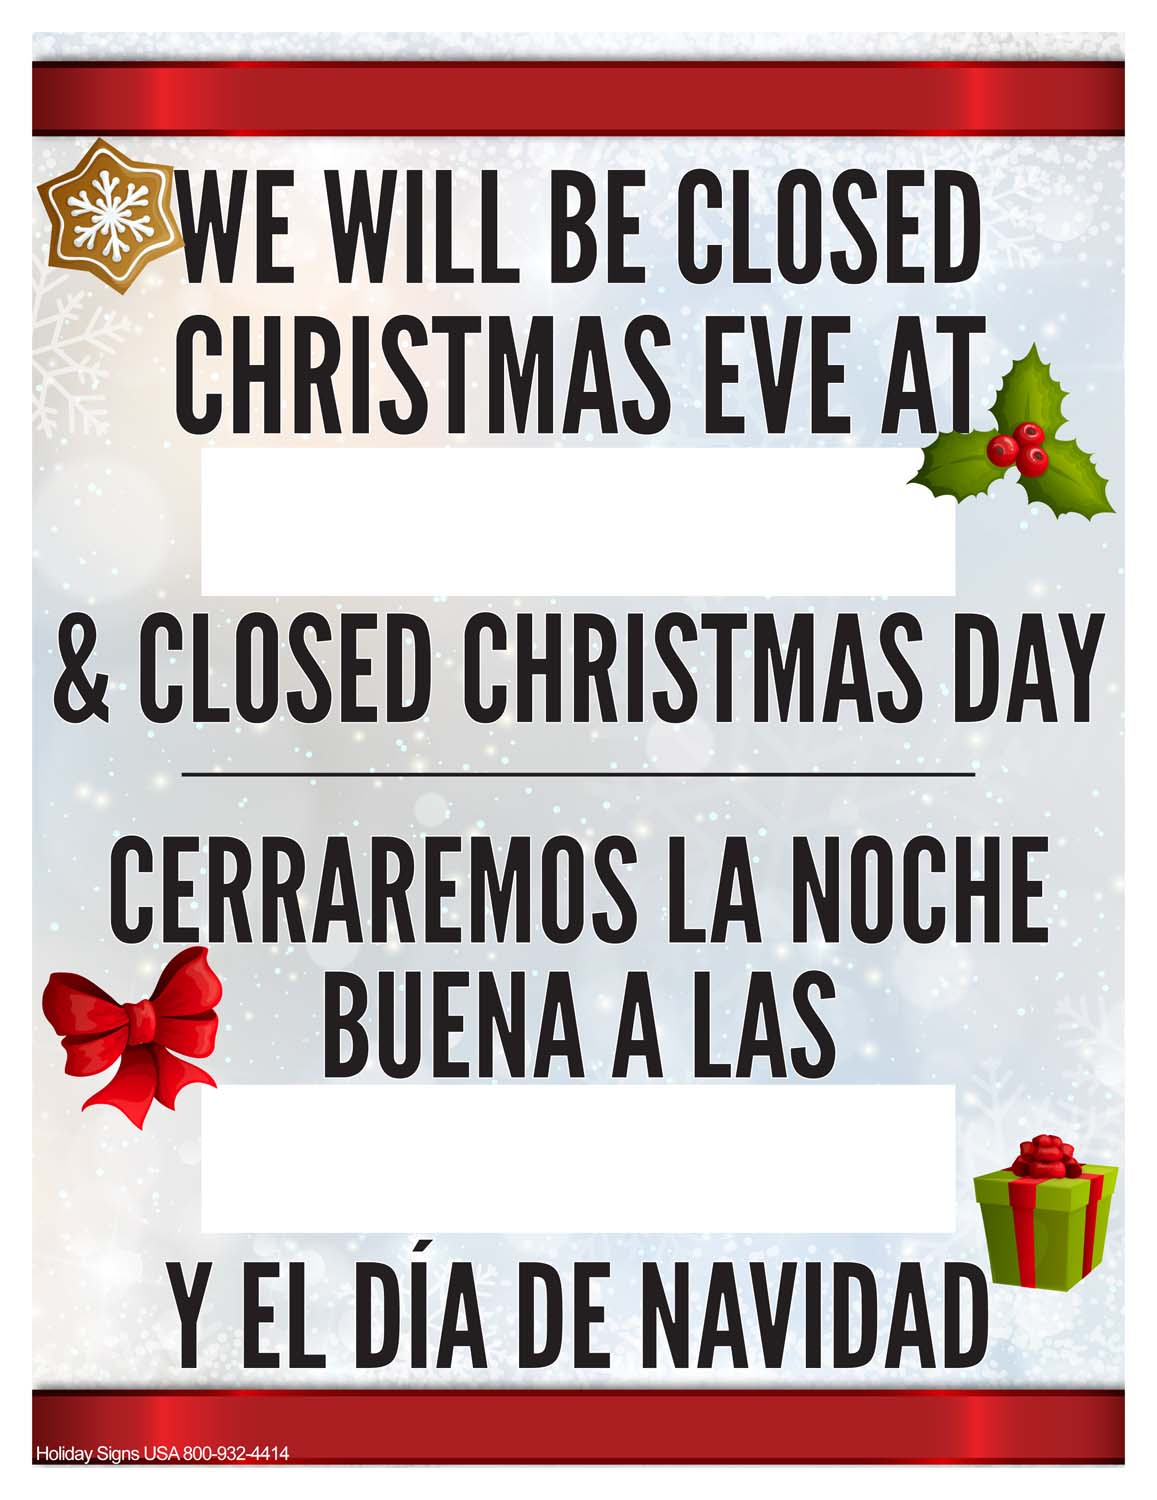 It's just a photo of Nerdy Free Printable Holiday Closed Signs for Businesses